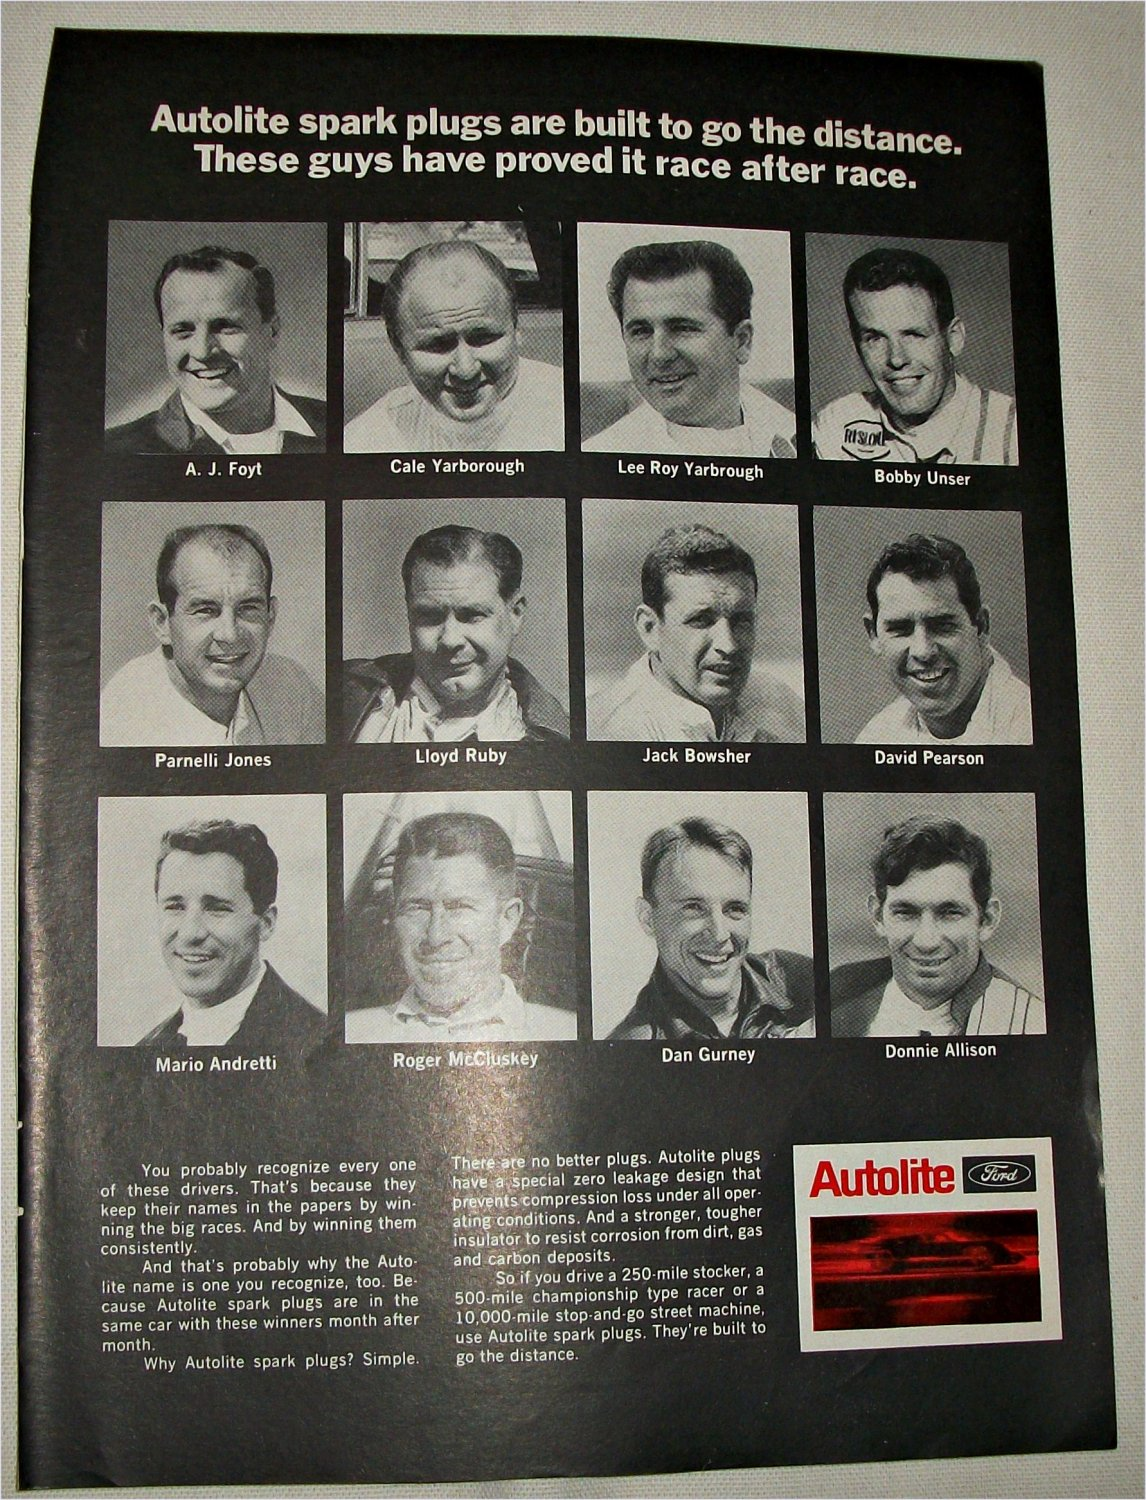 1969 Auto-Lite Spark Plugs ad featuring Racing Drivers